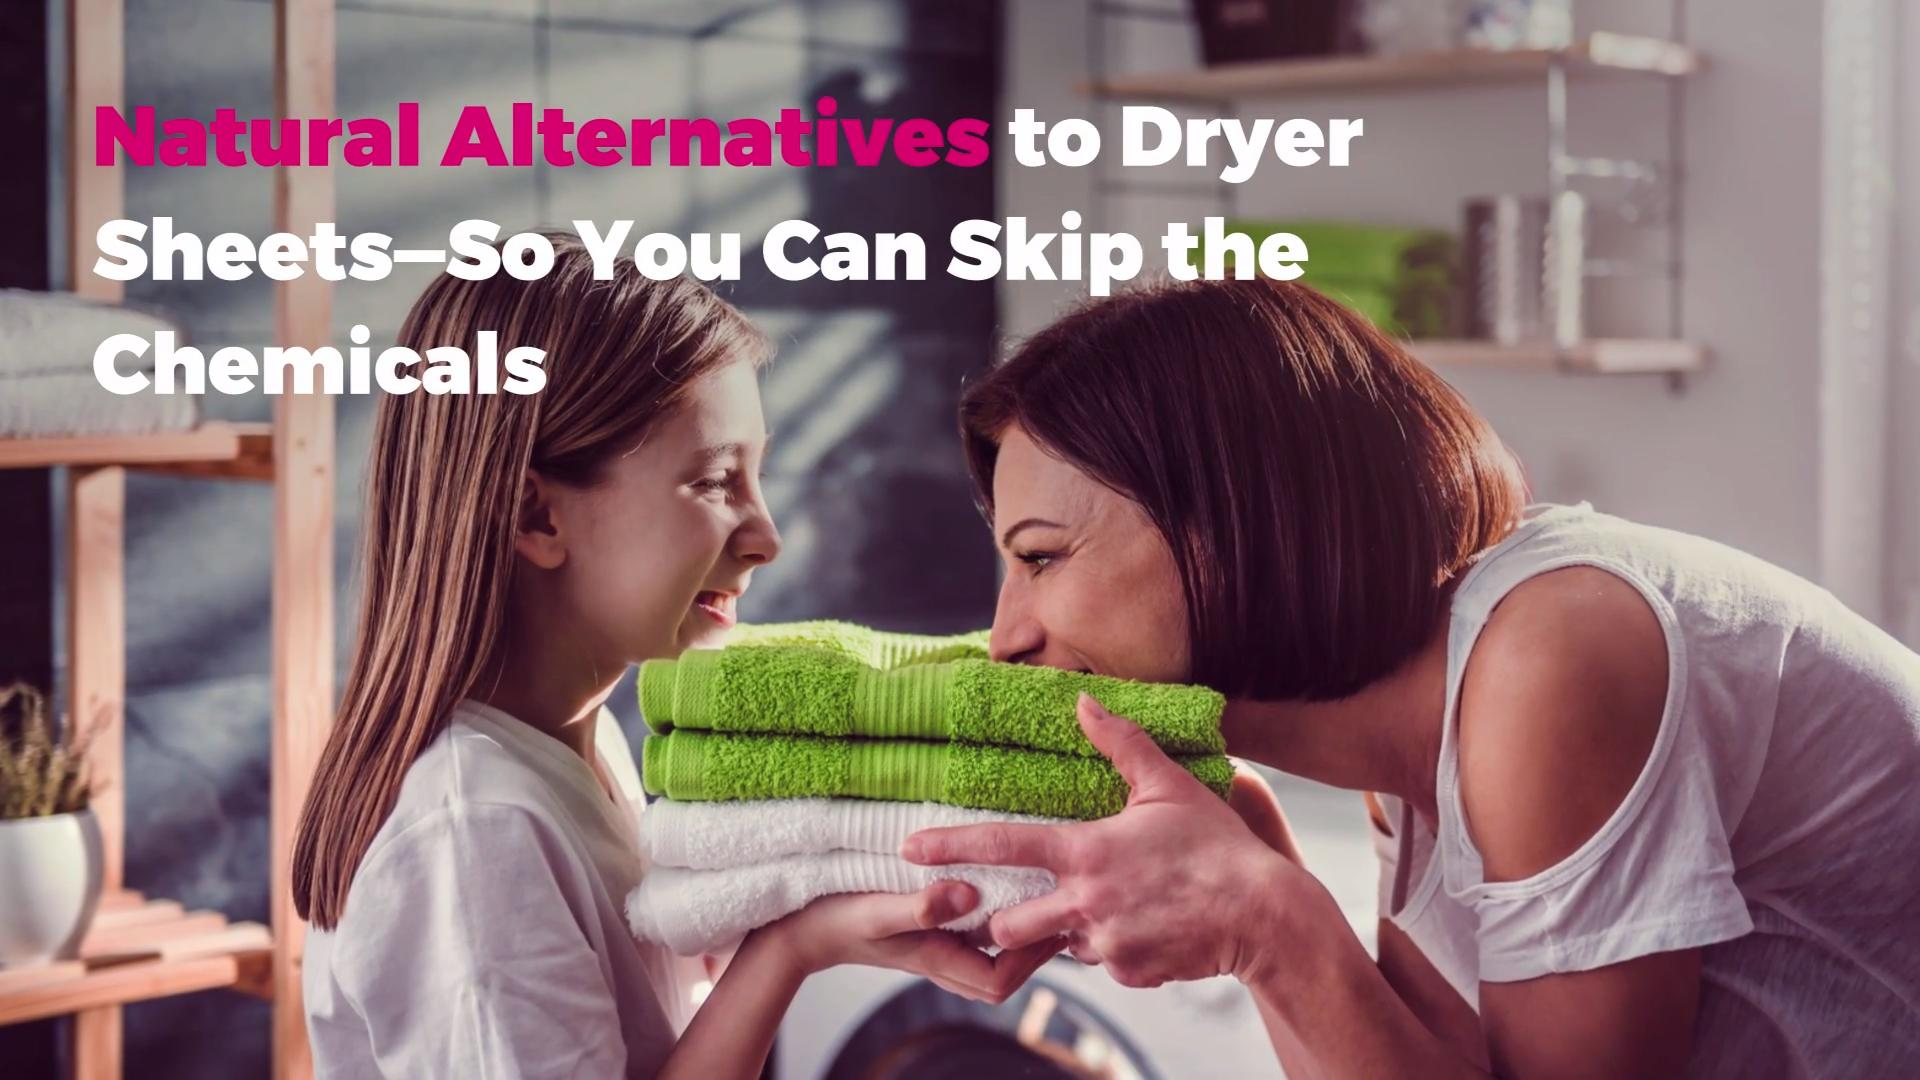 Natural Alternatives to Dryer Sheets—So You Can Skip the Chemicals